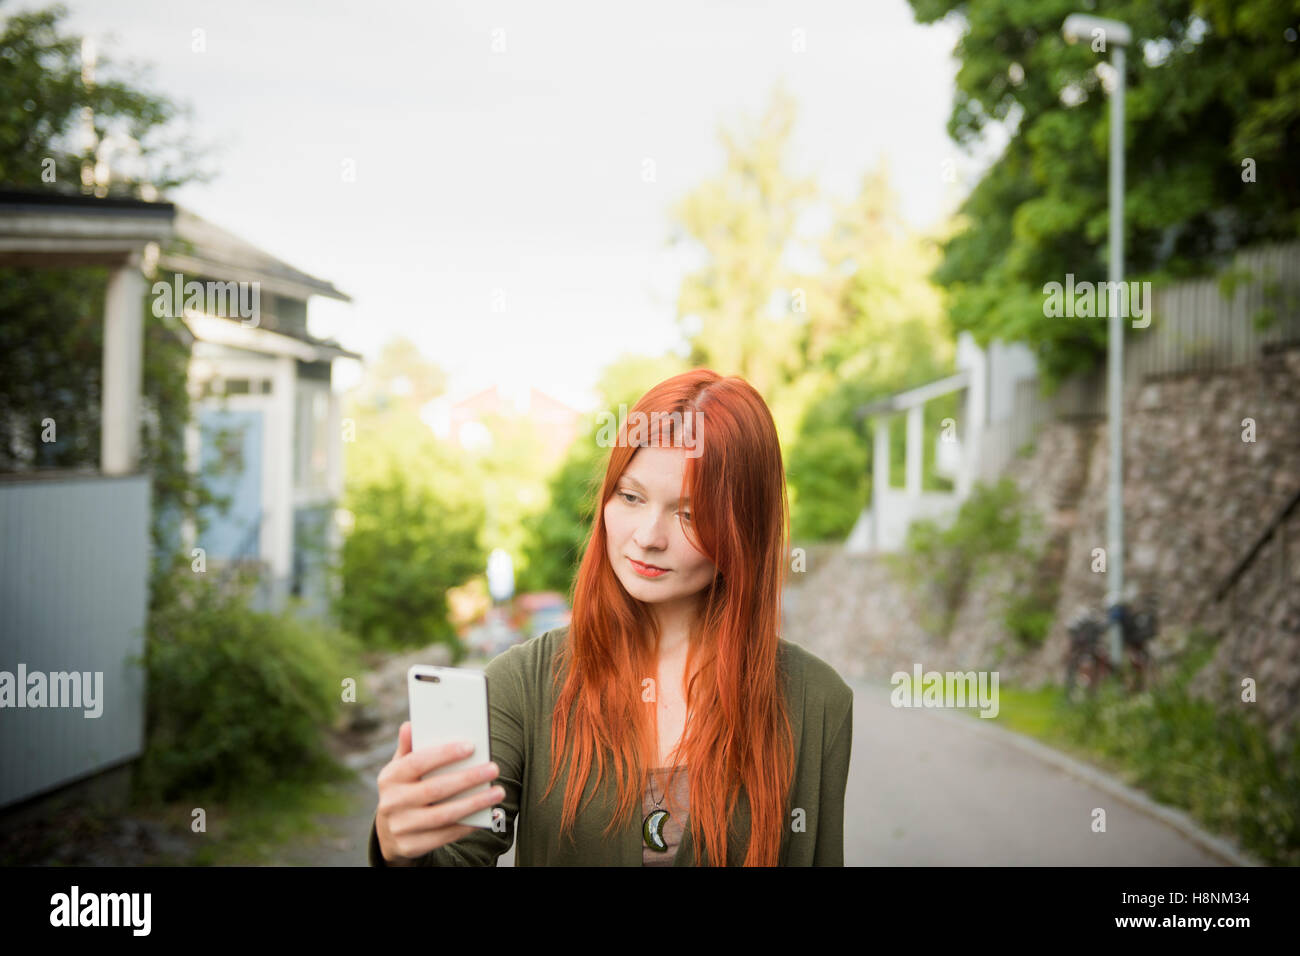 Redhaired woman using phone Photo Stock